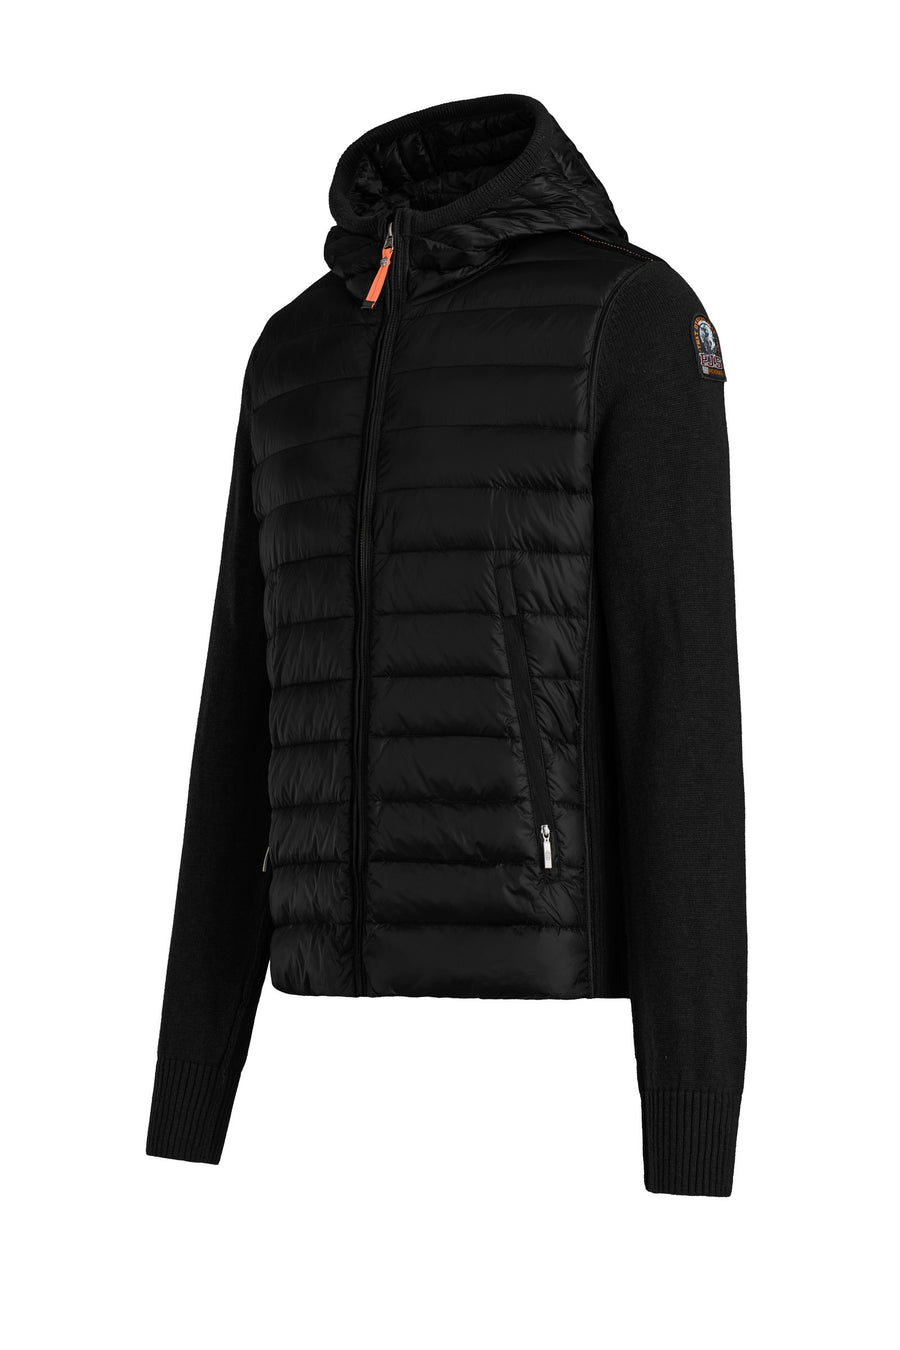 Parajumpers M-Illuga Men's Jacket